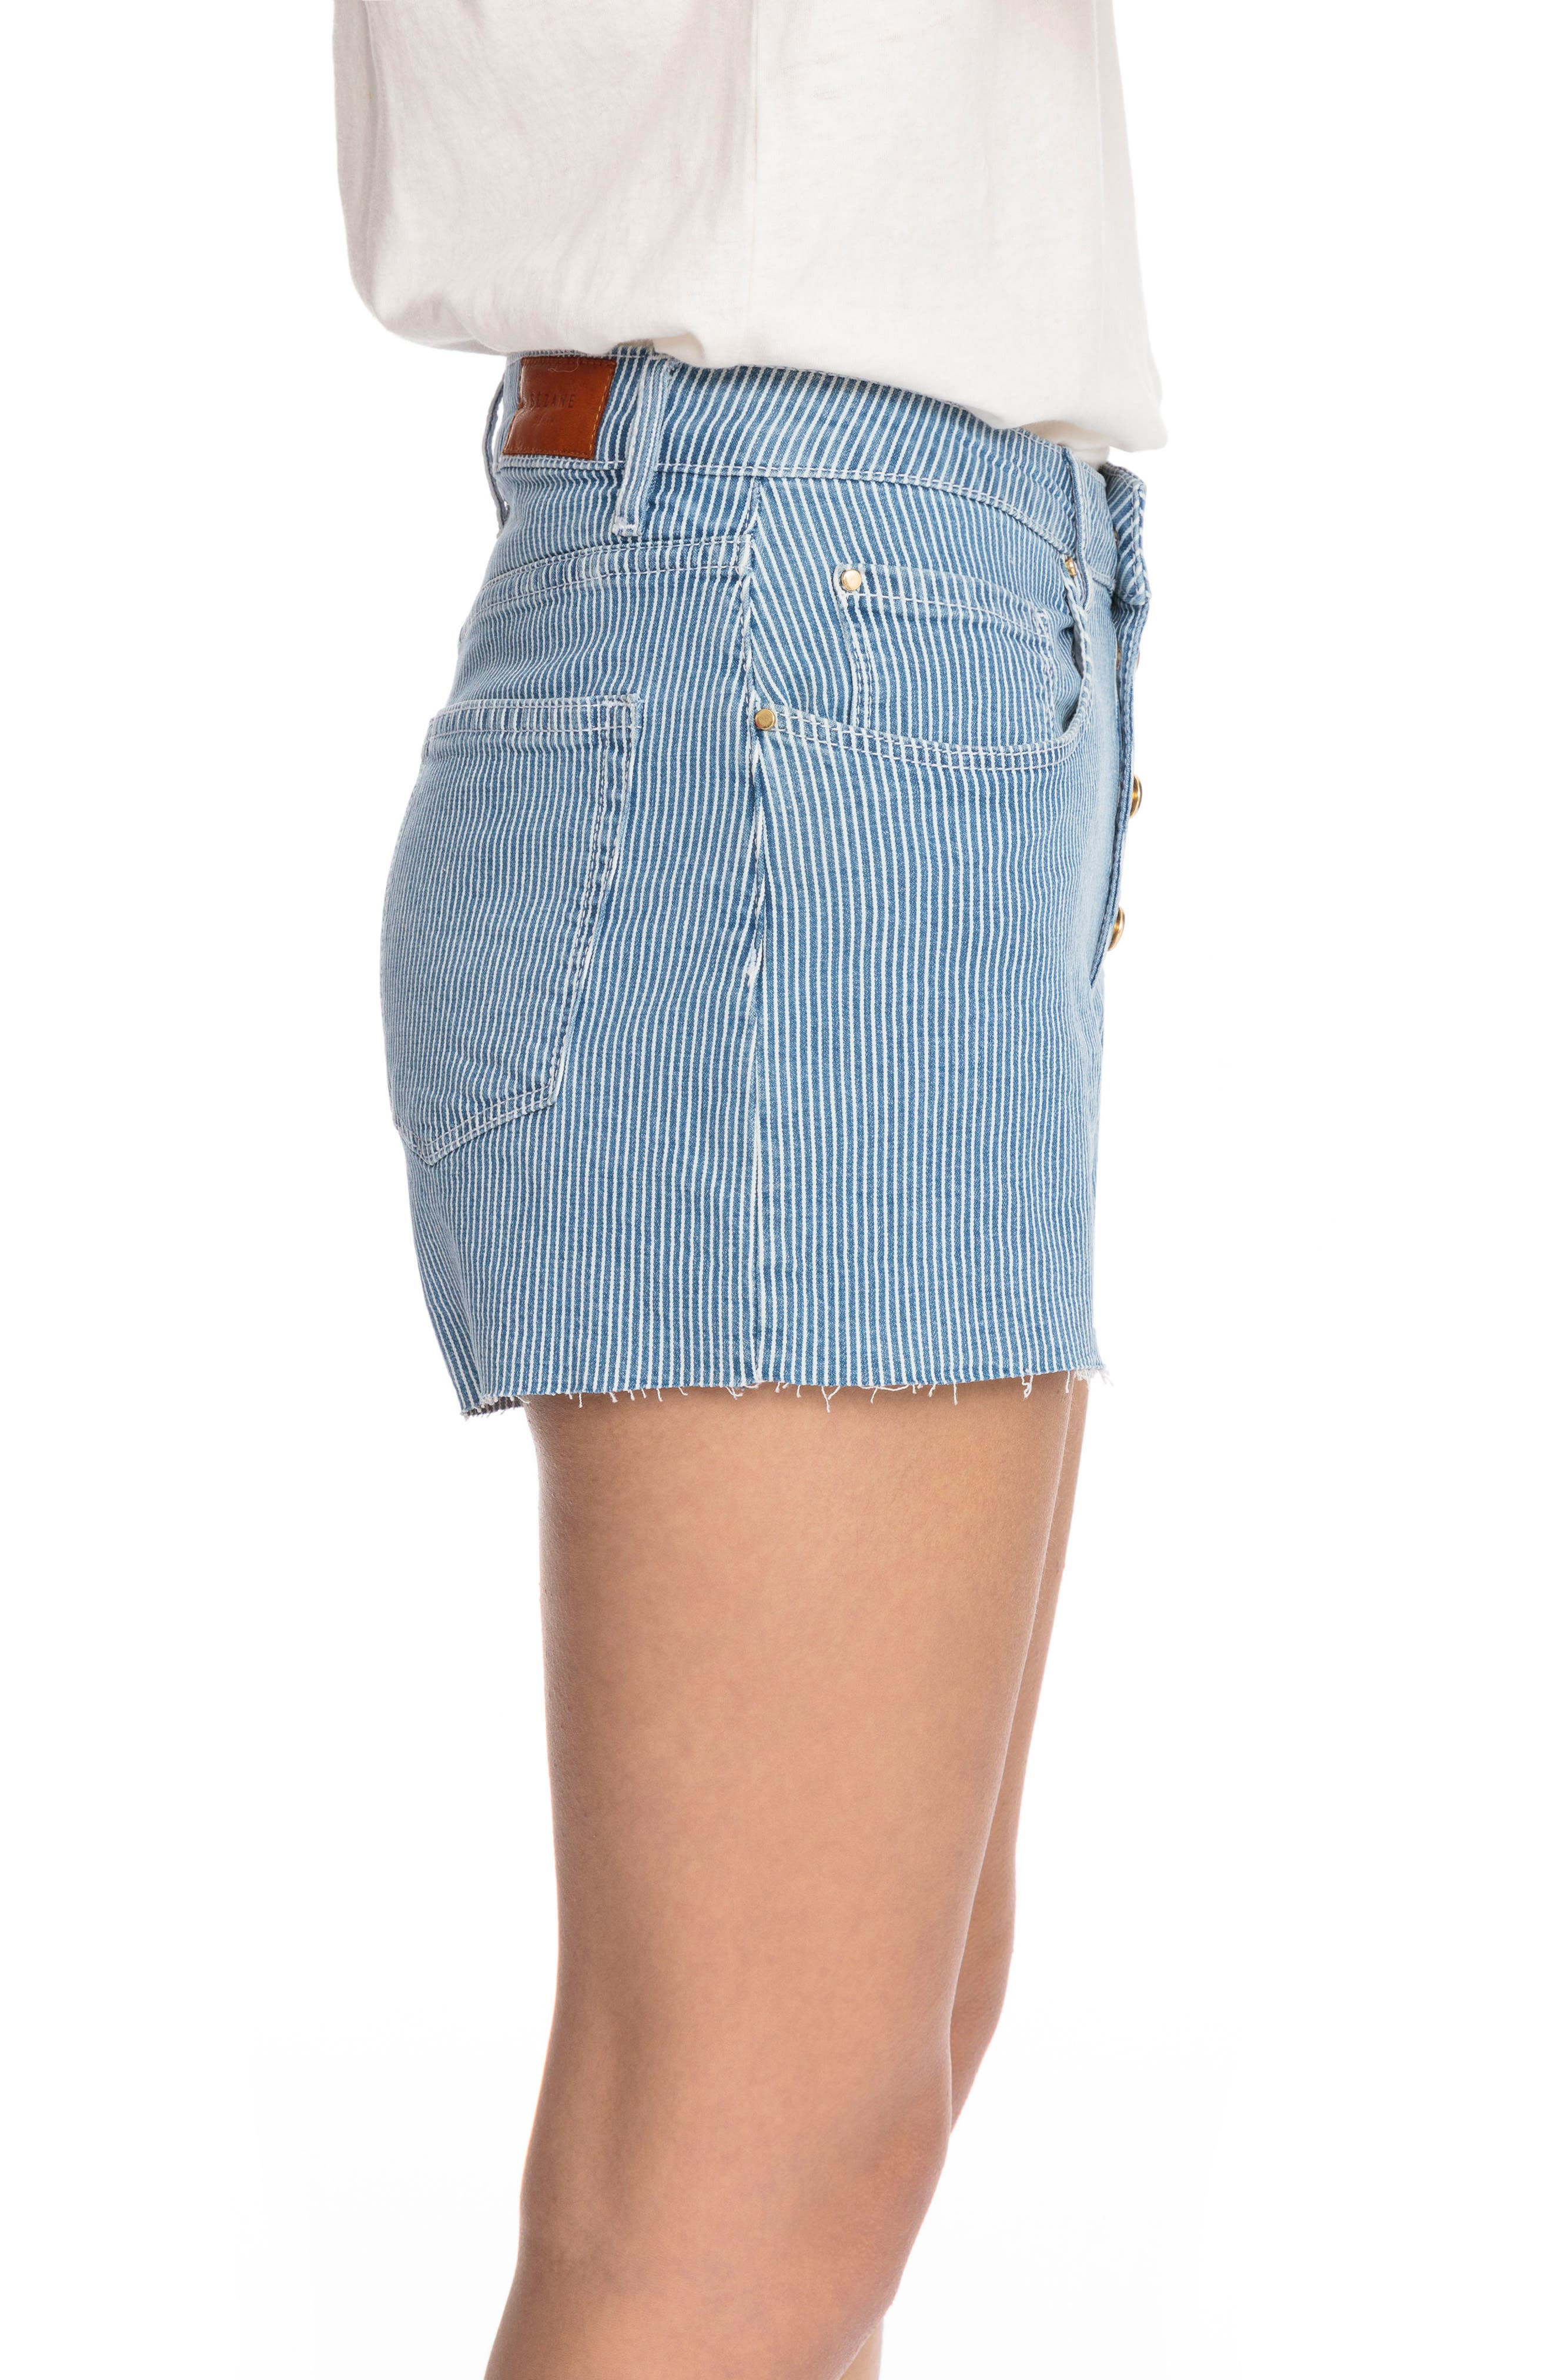 1968 Stripe Cutoff Denim Shorts,                             Alternate thumbnail 3, color,                             Off White And Blue Stripes